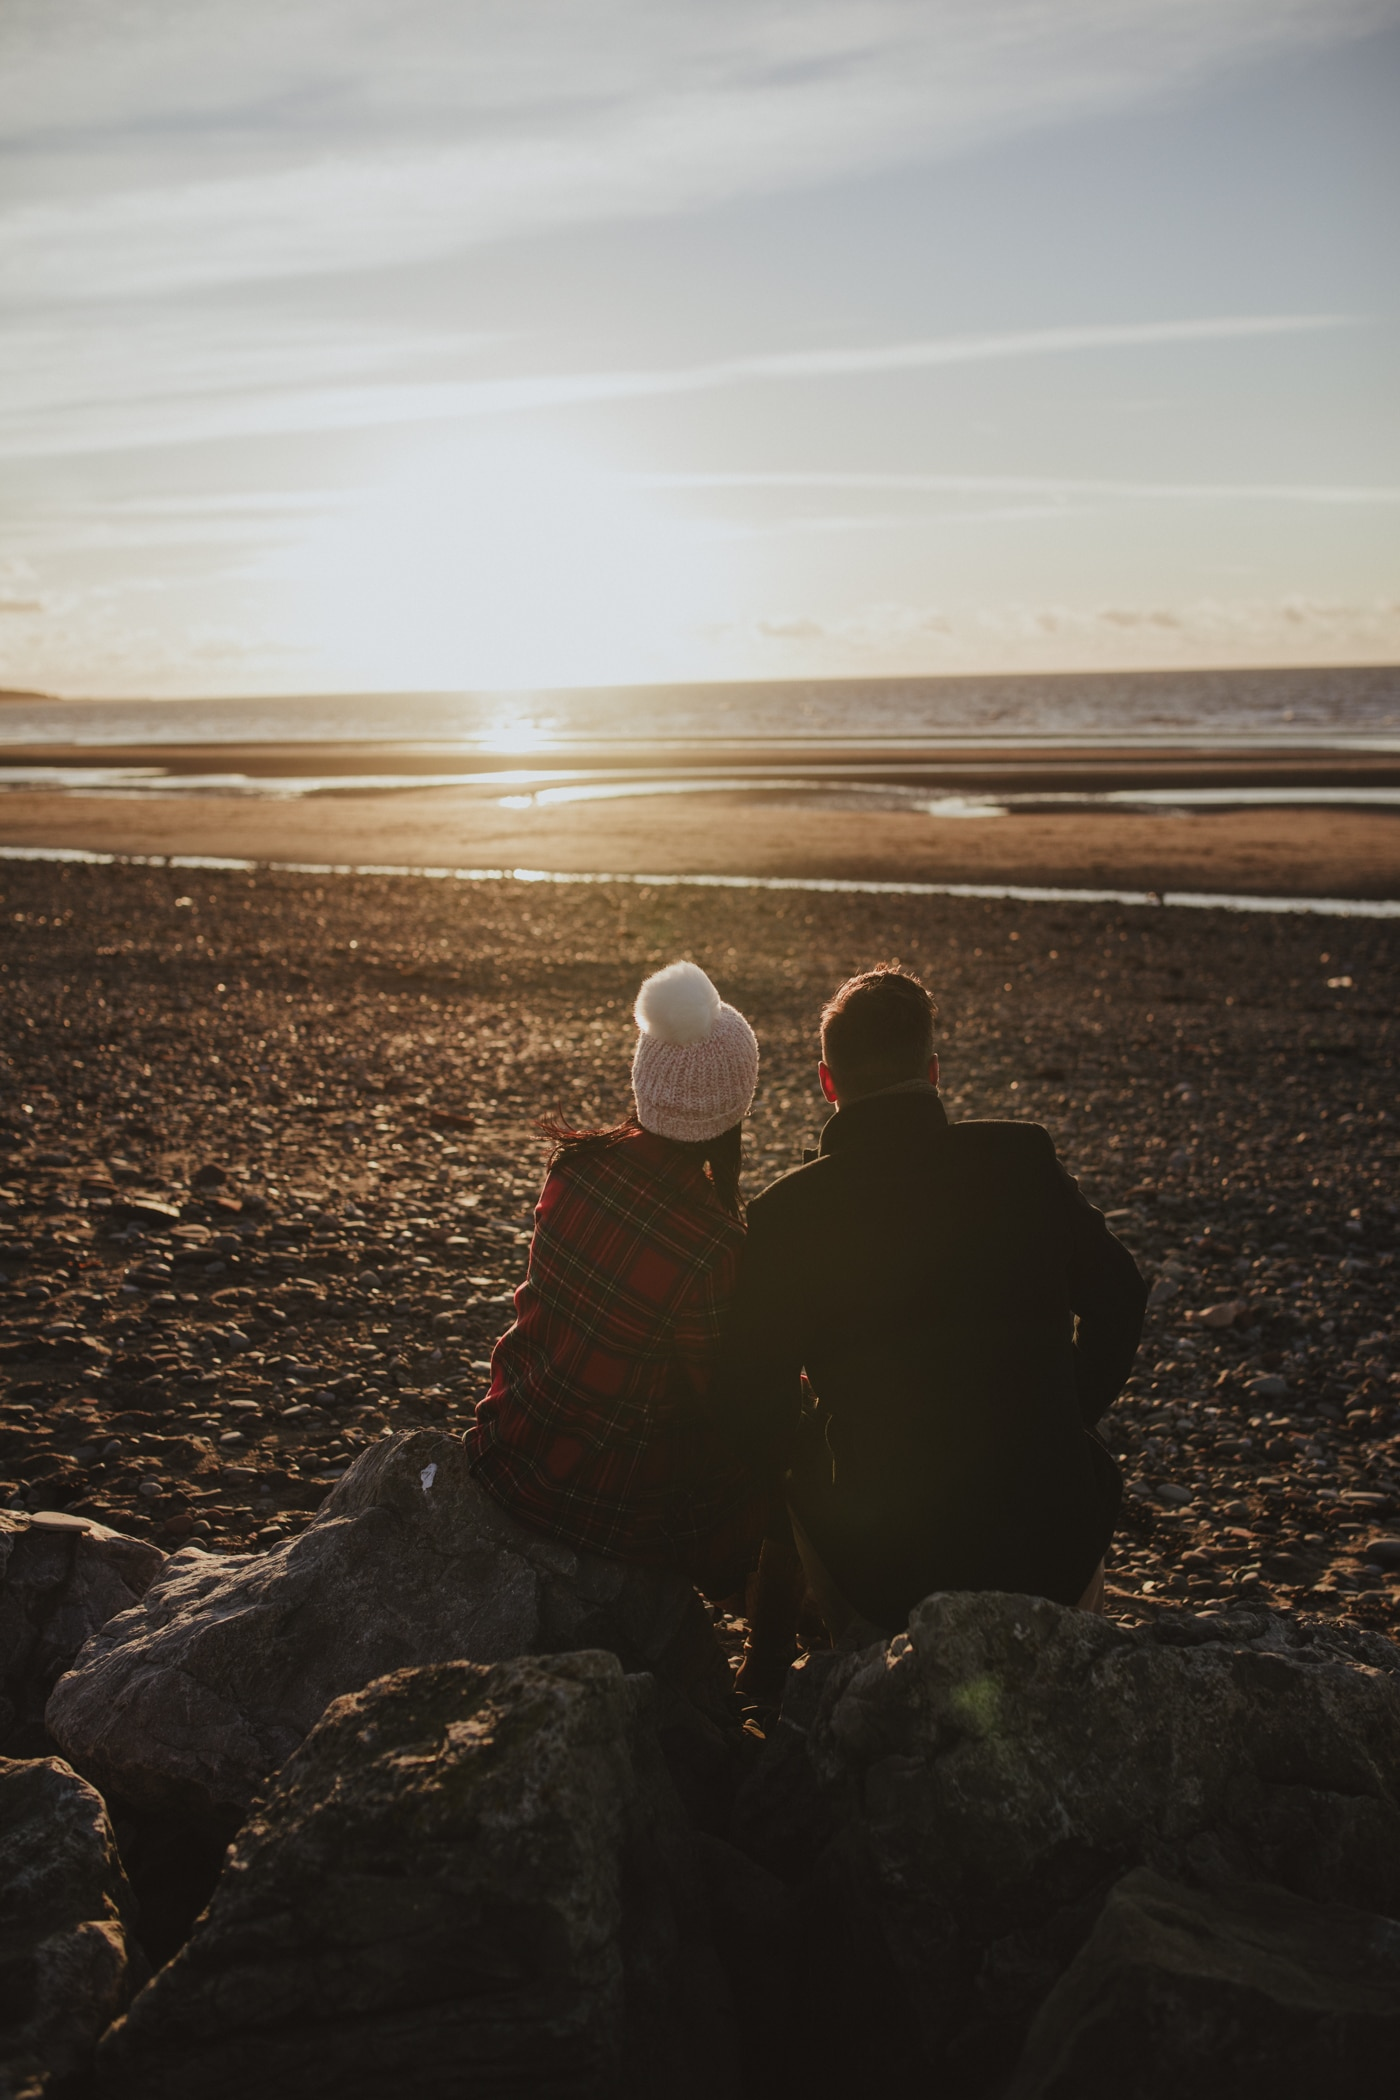 Man and woman in hat sitting on rock next to sea by Joshua Wyborn Photographic